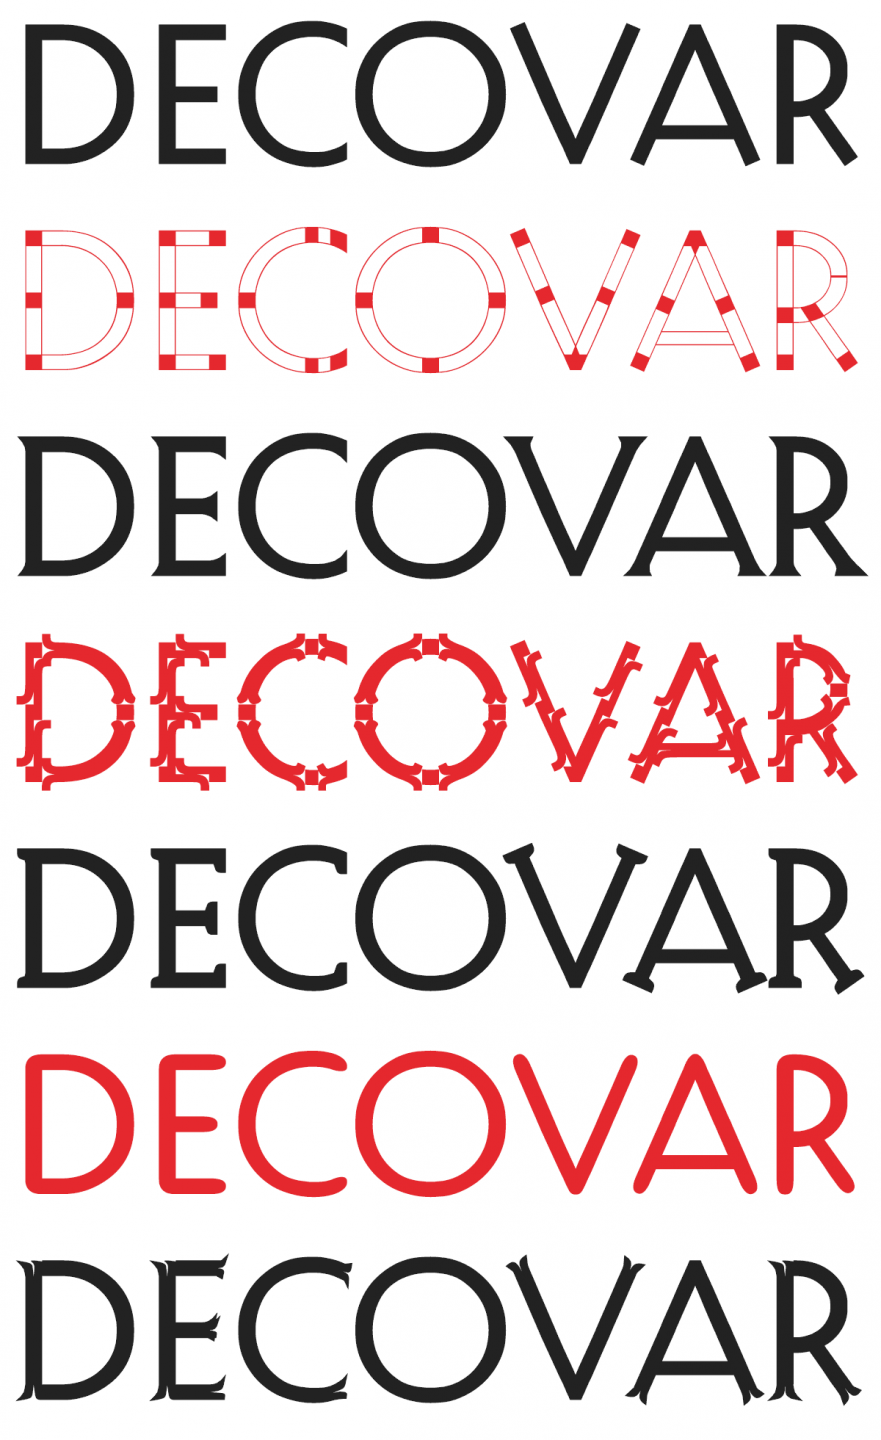 Samples of the DECOVAR font in various styles.